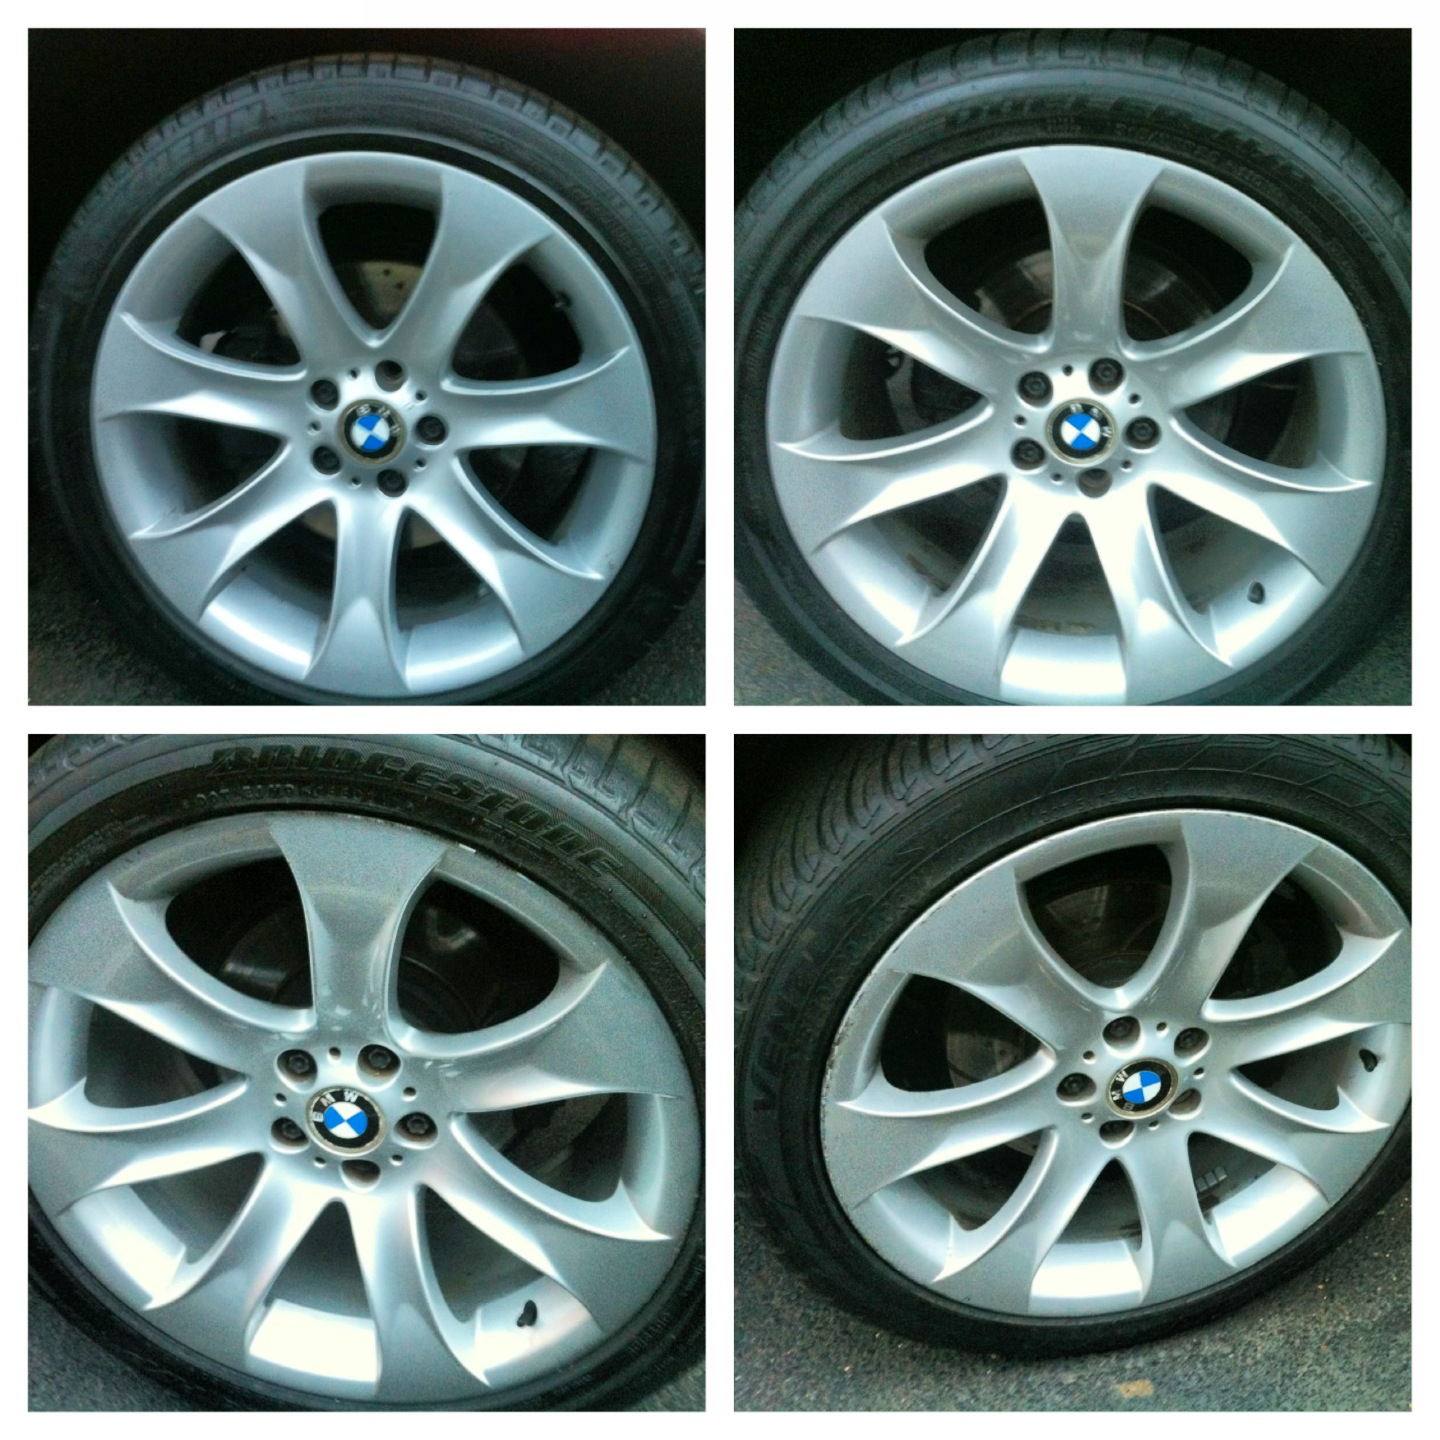 style forums dslr my with here from showthread some rft wheels rim styles performance are pics bmw dunlop